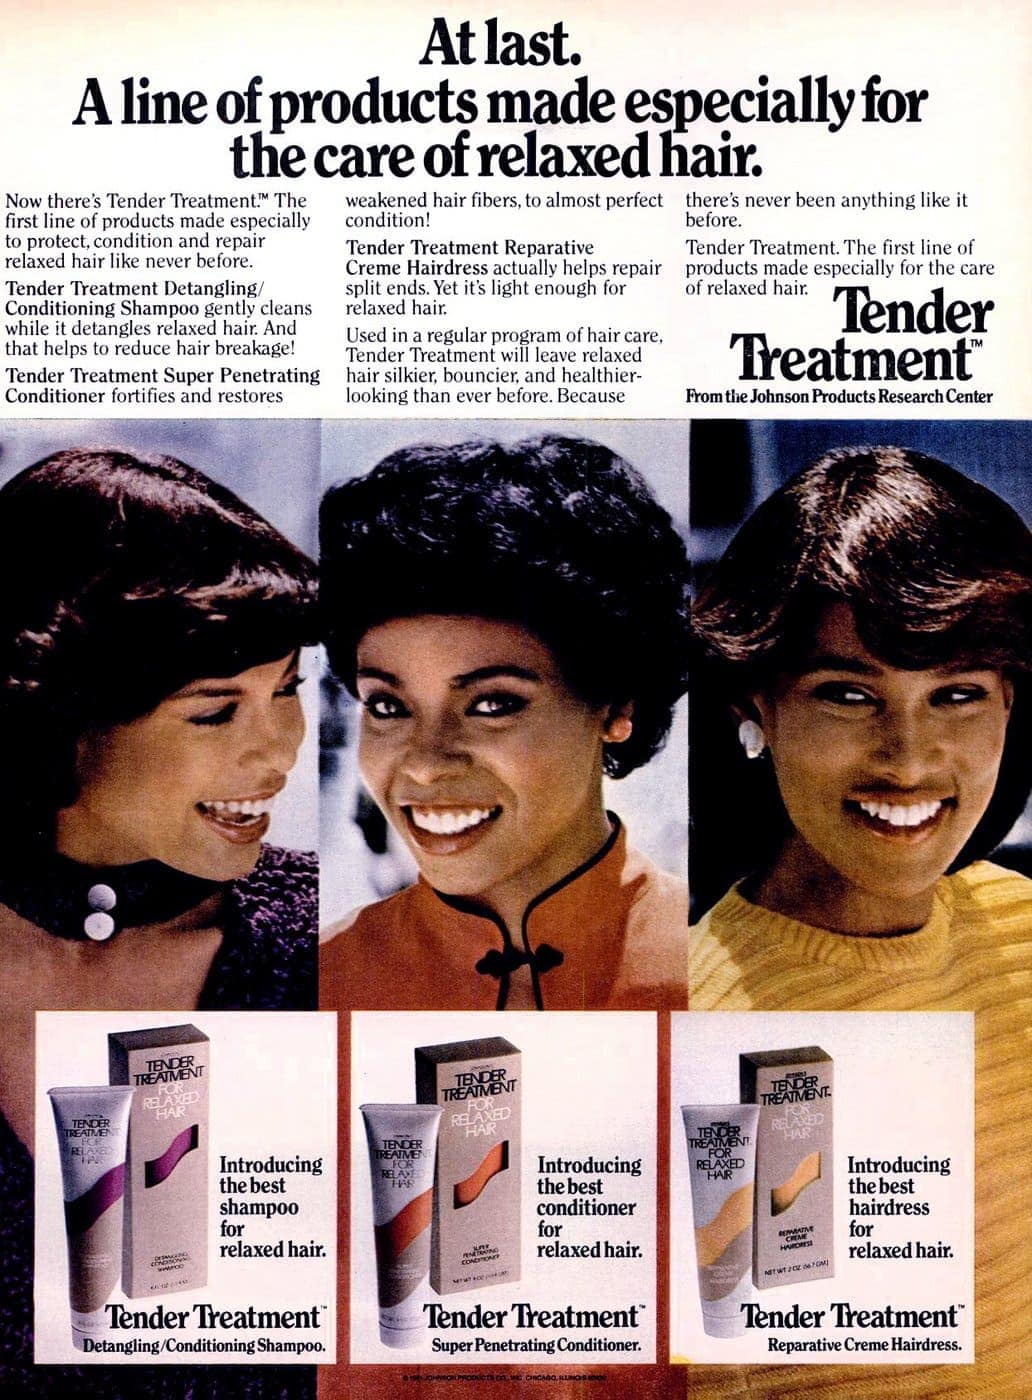 Tender Treatment shampoo and conditioner from 1981